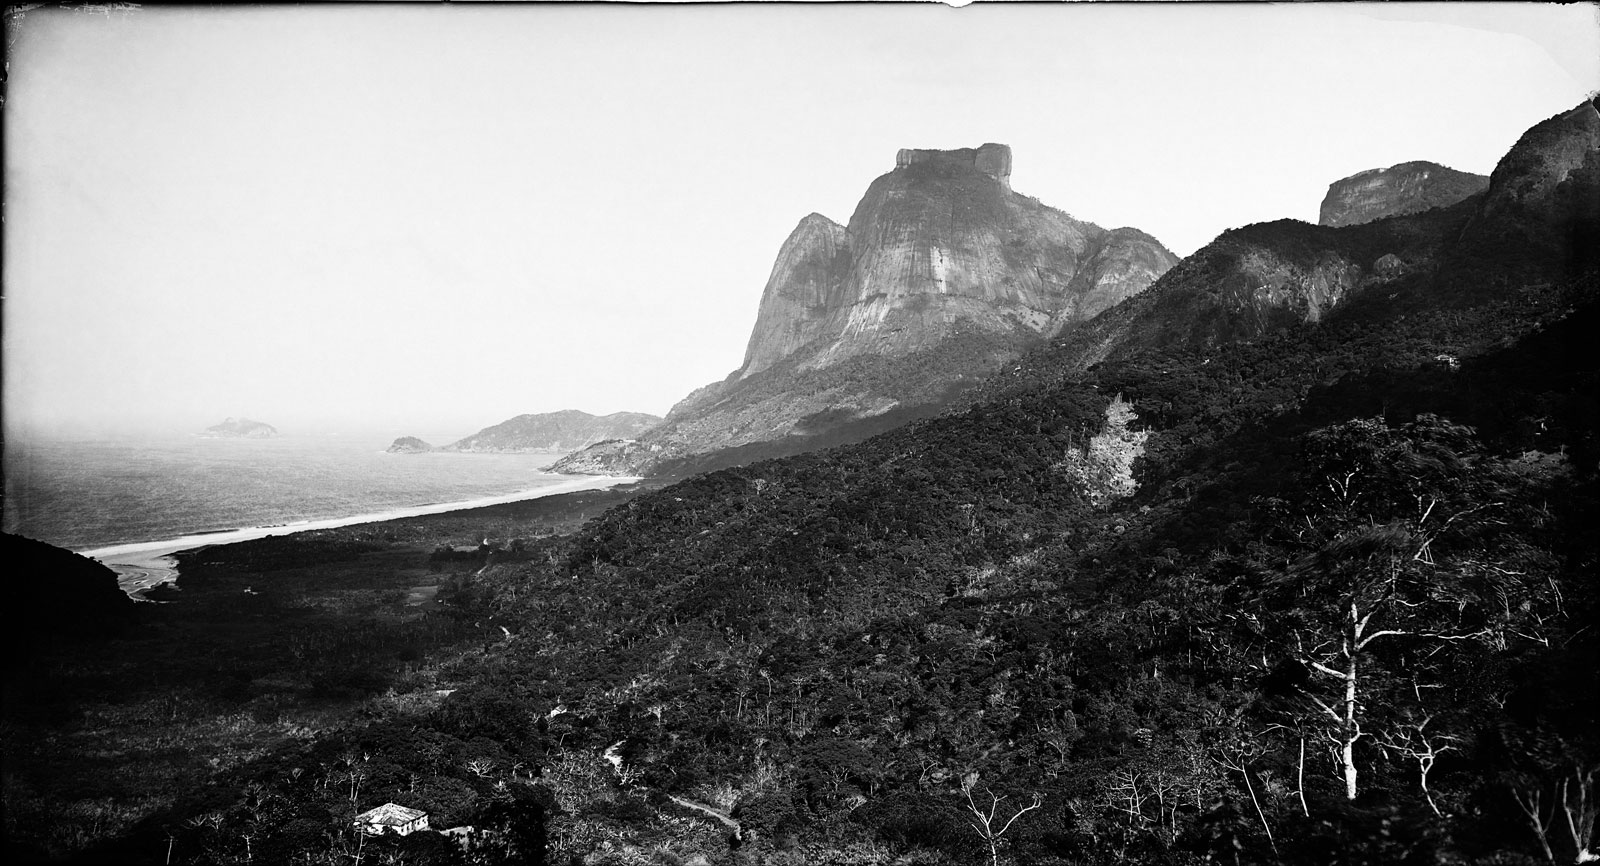 Pedra de Gávea Mountain and São Conrado Beach, circa 1890